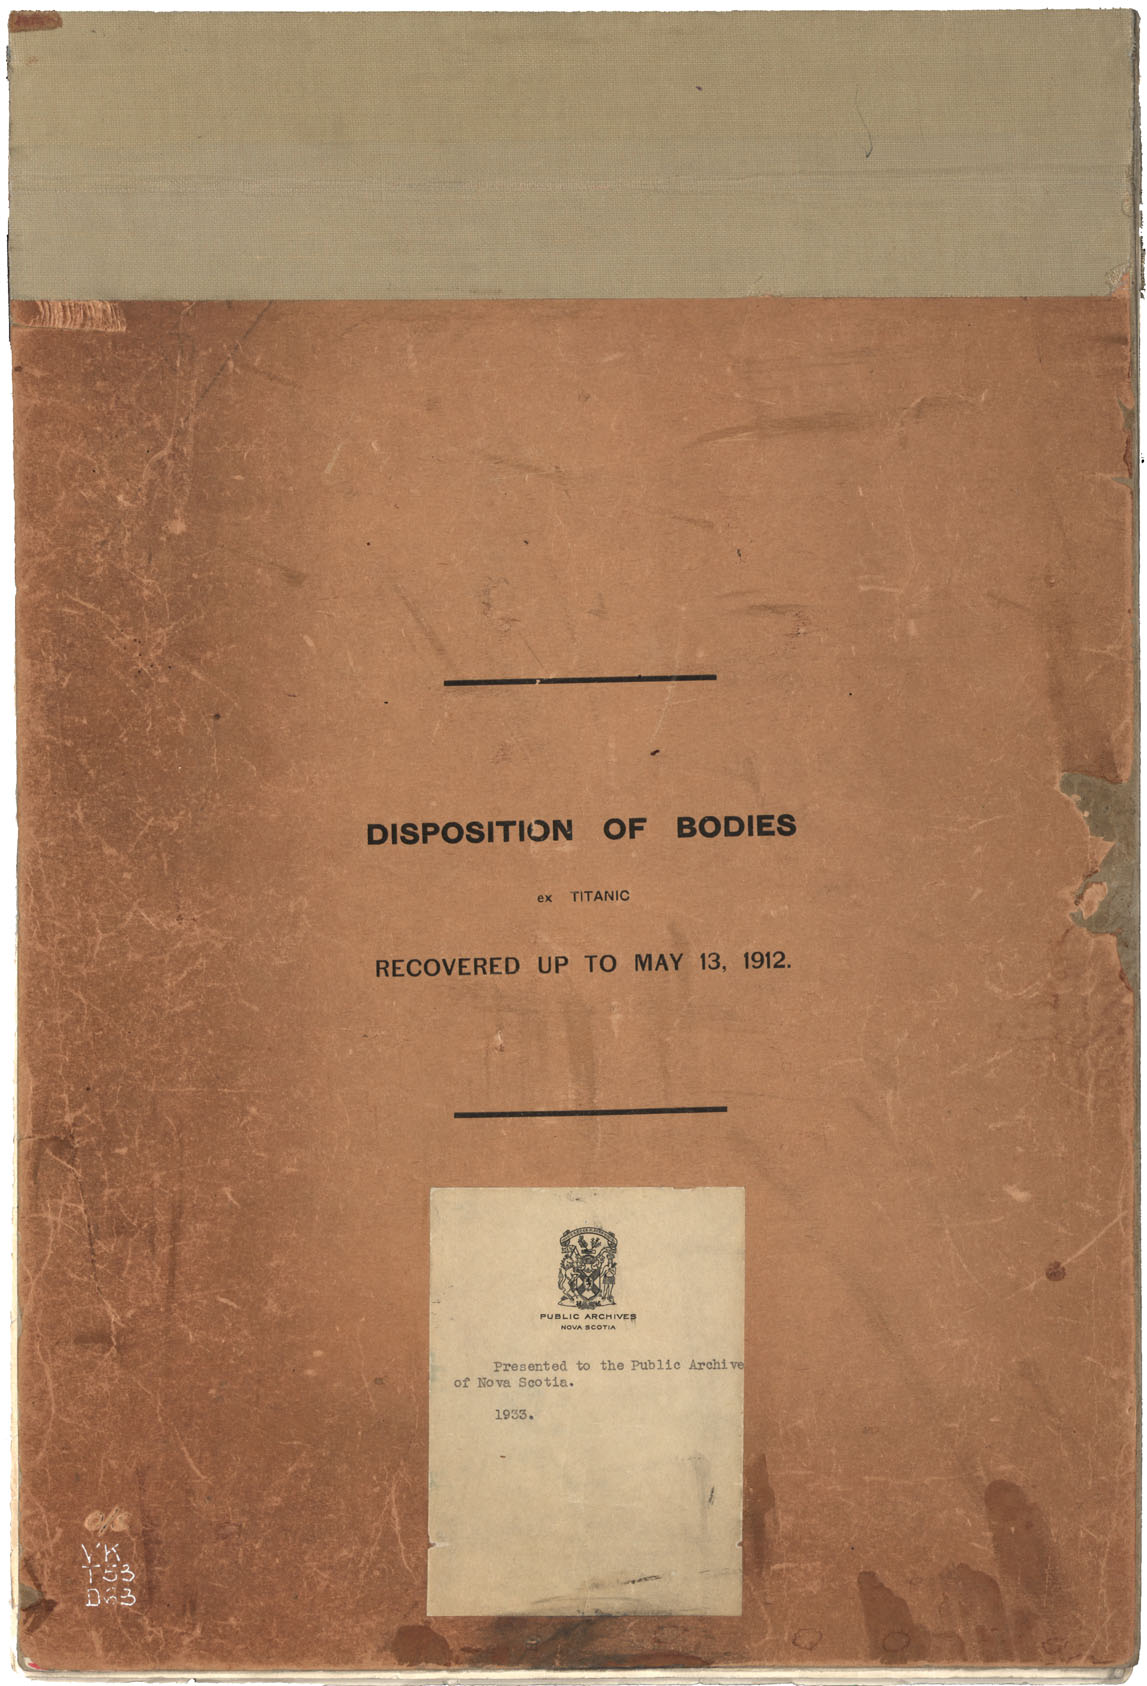 List of Bodies and Disposition of the Same